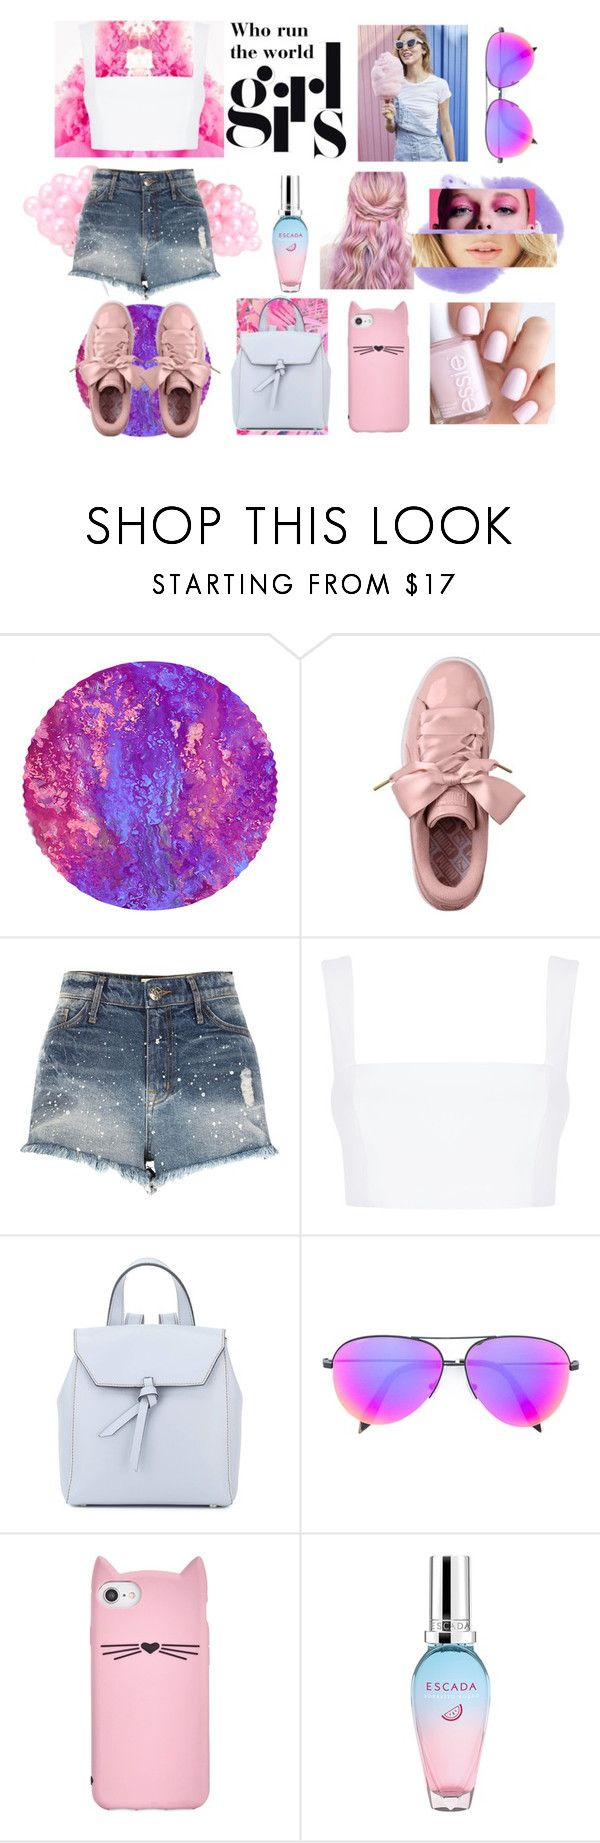 """Who #run the #world #girls"" by nechines ❤ liked on Polyvore featuring River Island, Nicholas, Alexandra de Curtis, Victoria Beckham, Kate Spade, ESCADA, Girls, run and world"